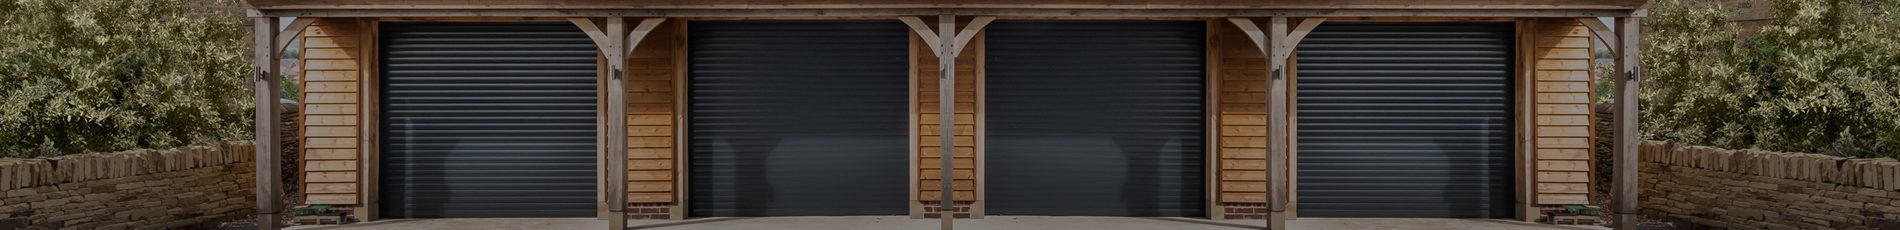 Roller Garage Doors Nantwich, Cheshire - Franchise, Installer and Stockists Opportunity